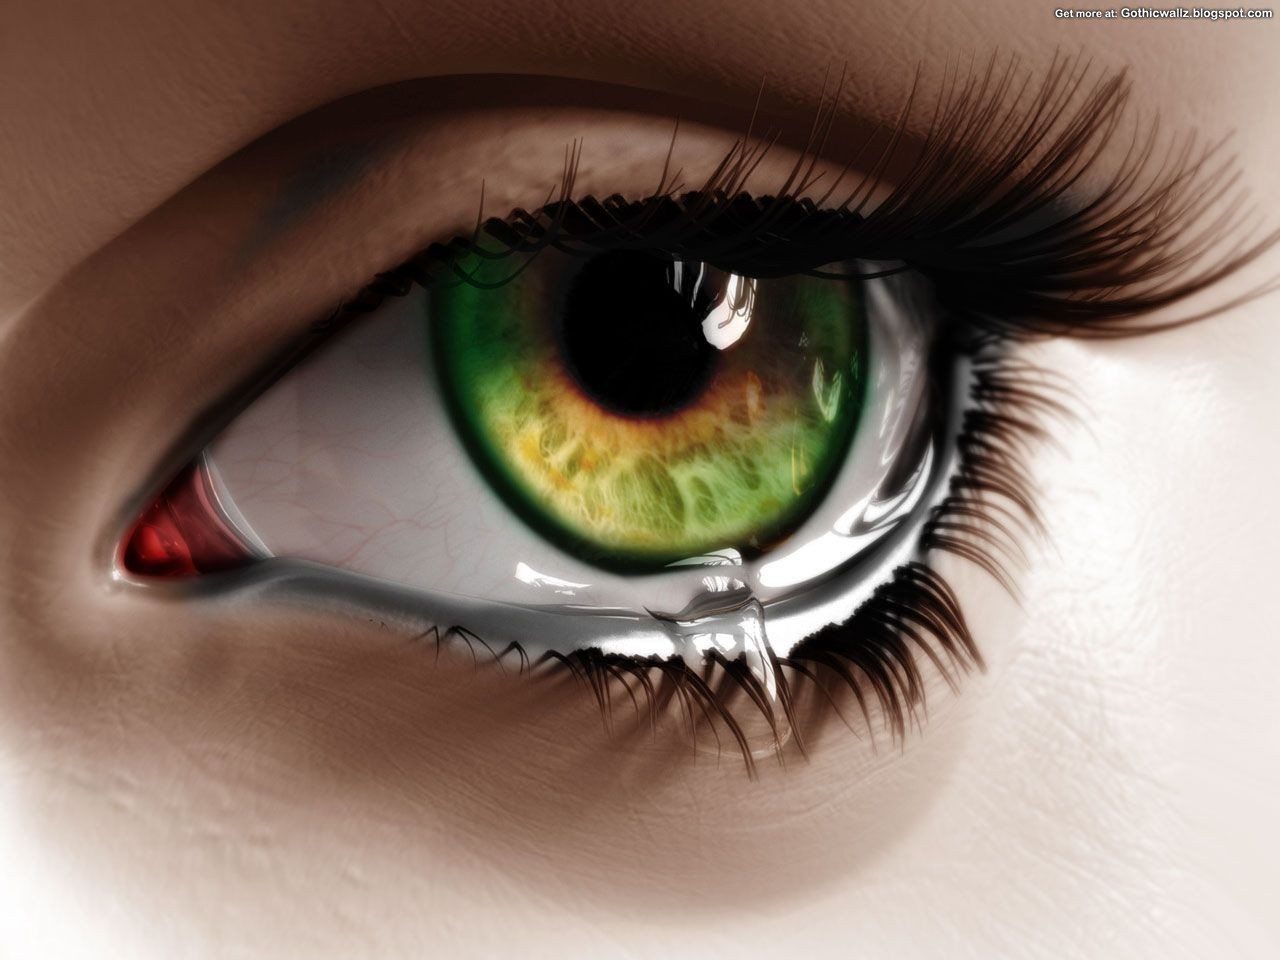 Gothic Wallpapers: The-Eye